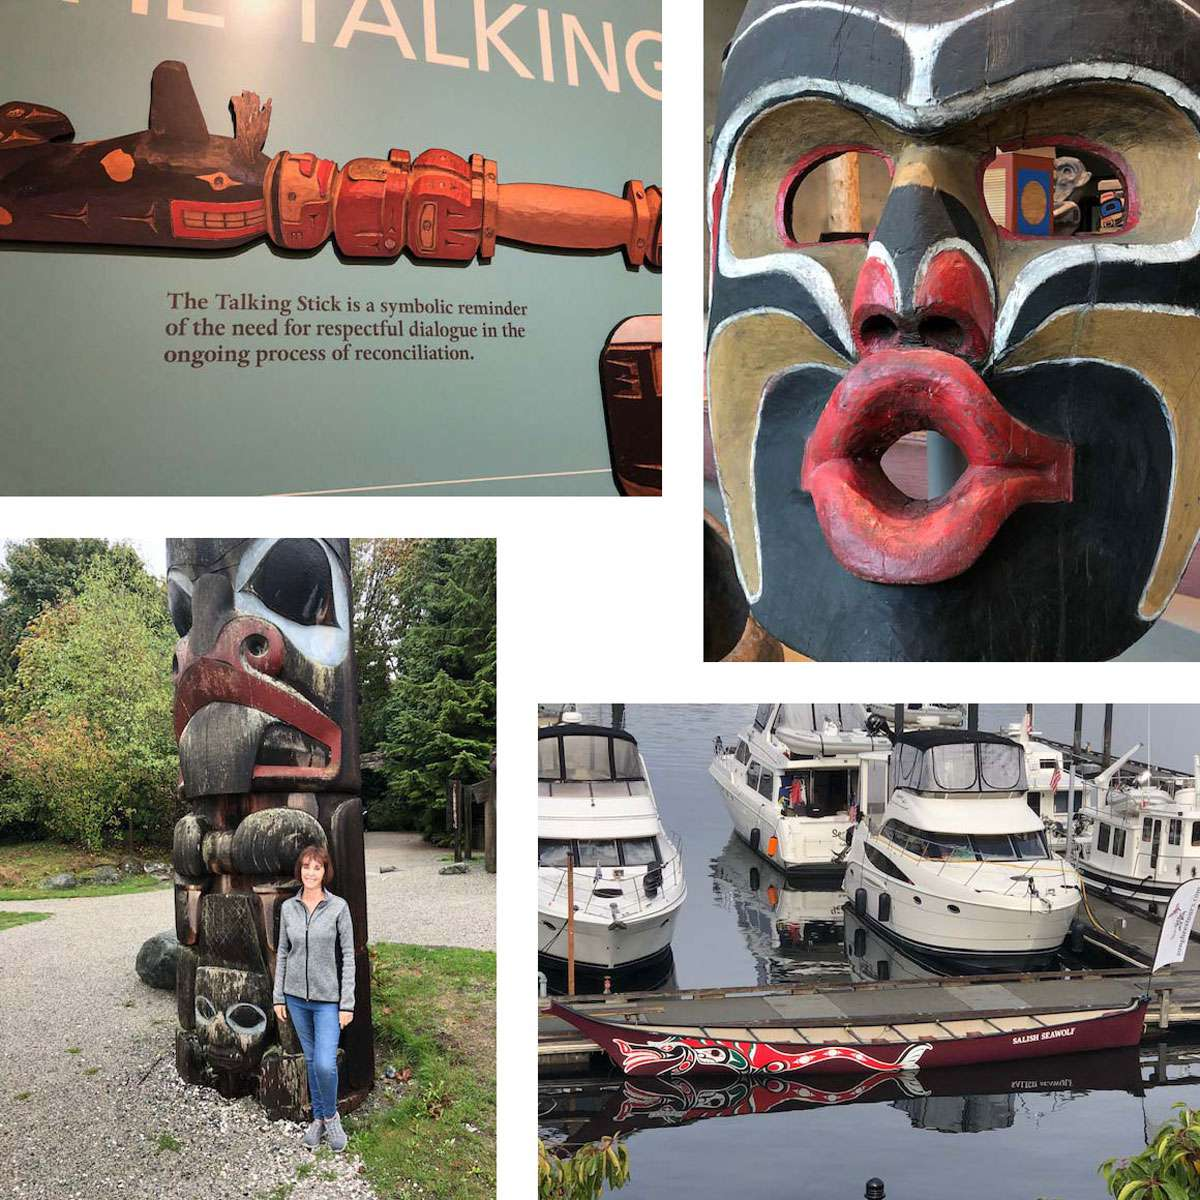 Claudia & R.J. Weston of San Diego were able to appreciate the First Nation culture in British Columbia more thoroughly through their extended home swap. Photos: Courtesy of the Westons